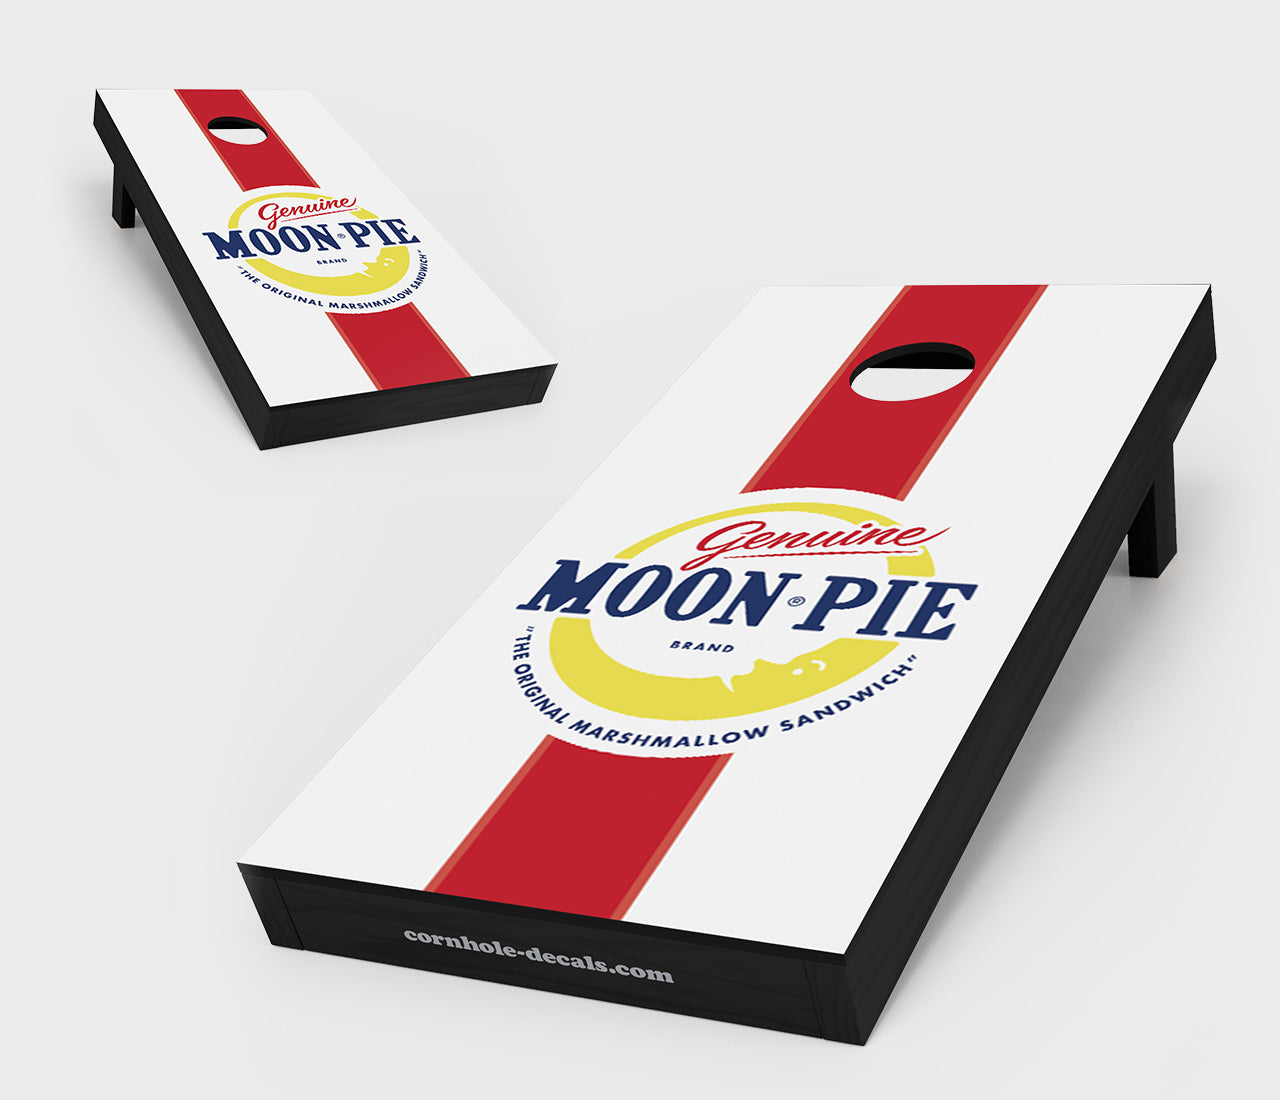 Genuine Moonpie Cornhole Board Set